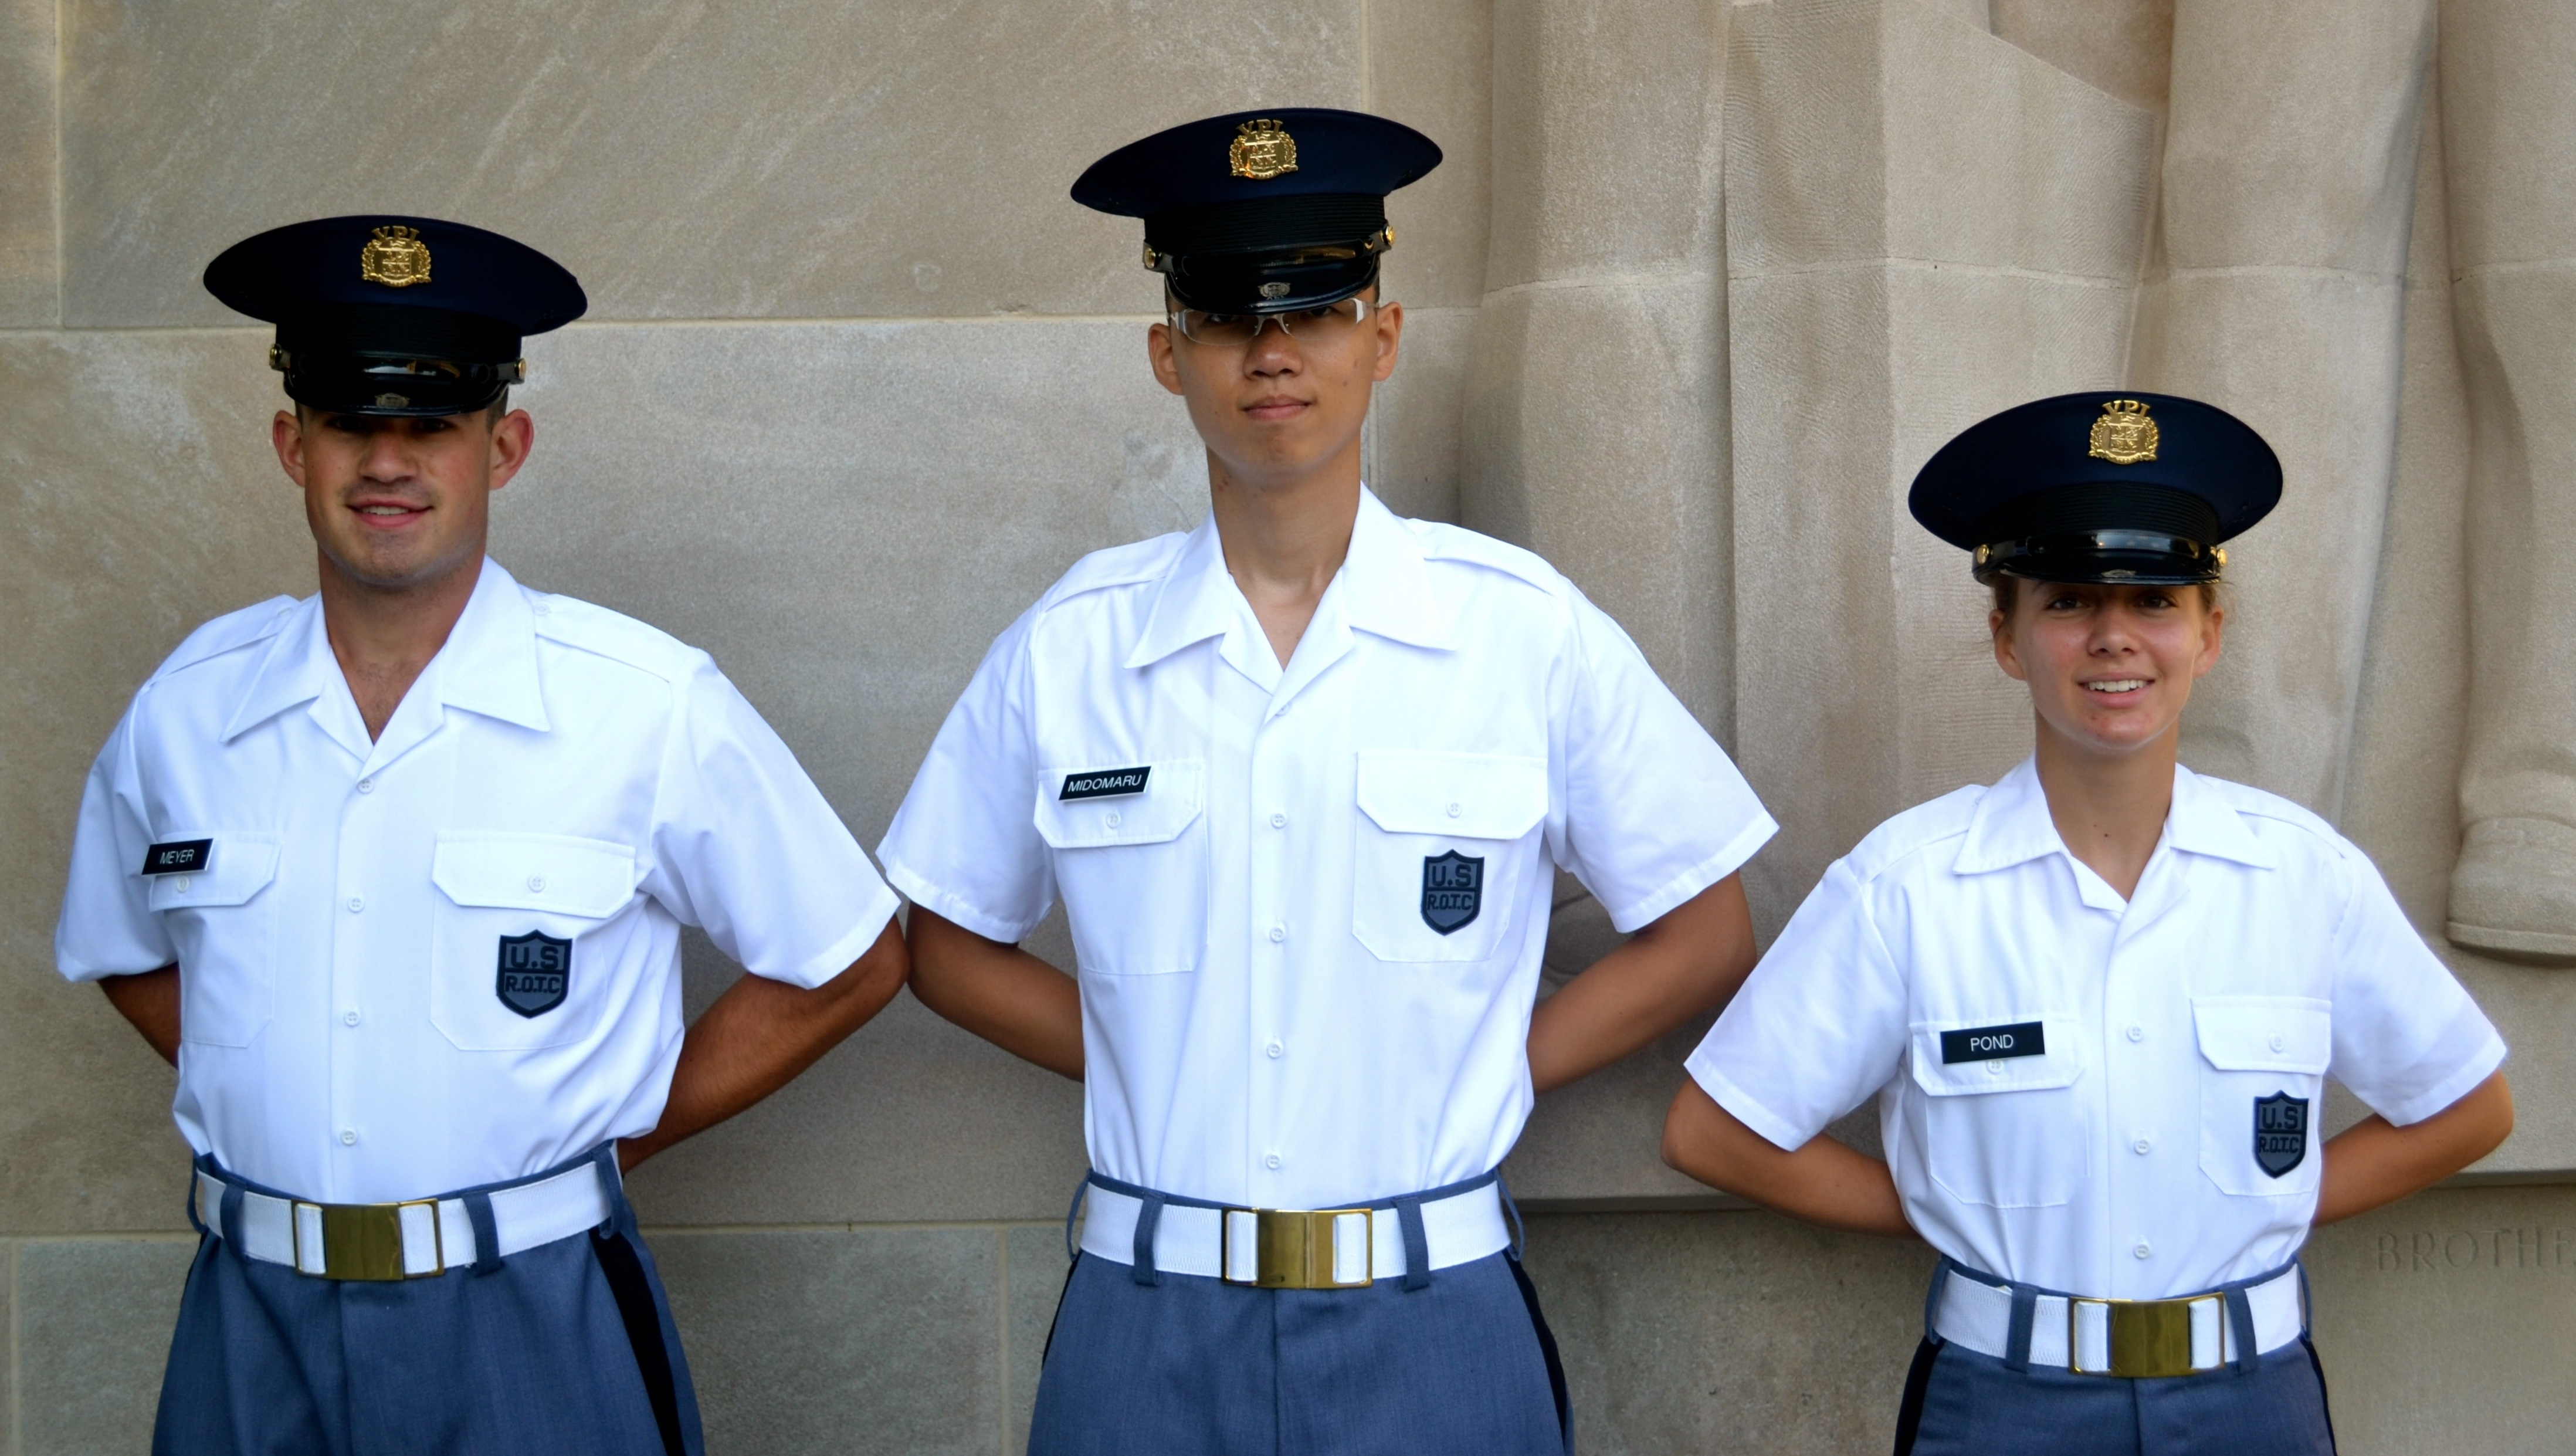 From left to right are Cadets Thomas Meyer, Ronald Midomaru, and Joelle Pond standing in front of the Brotherhood Pylon.